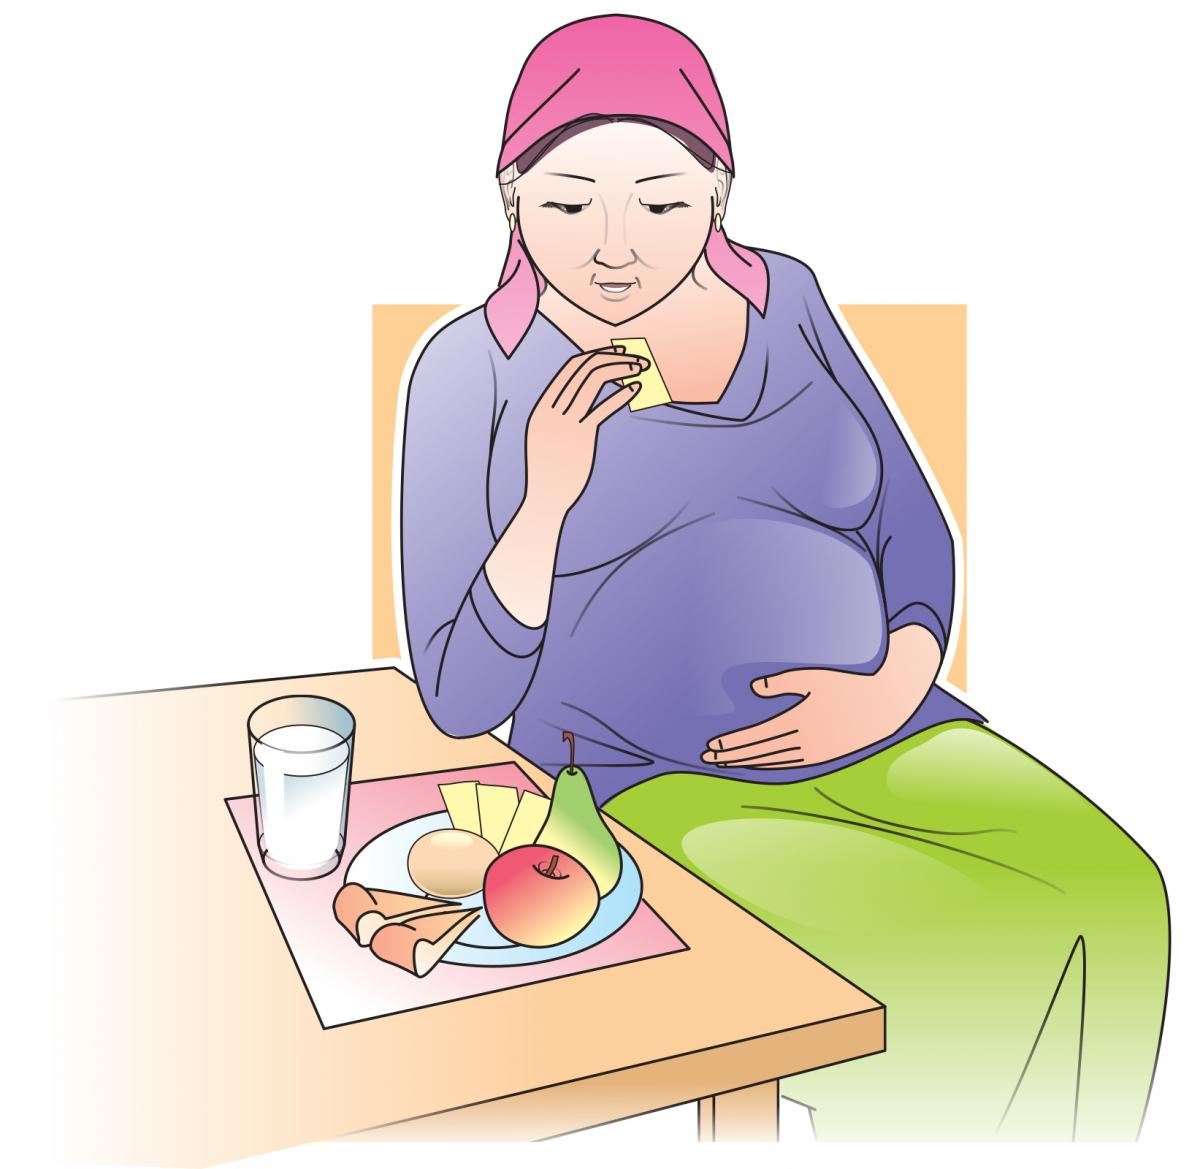 Maternal Nutrition - Pregnant woman eating healthy meal - 01 - Kyrgyz Republic